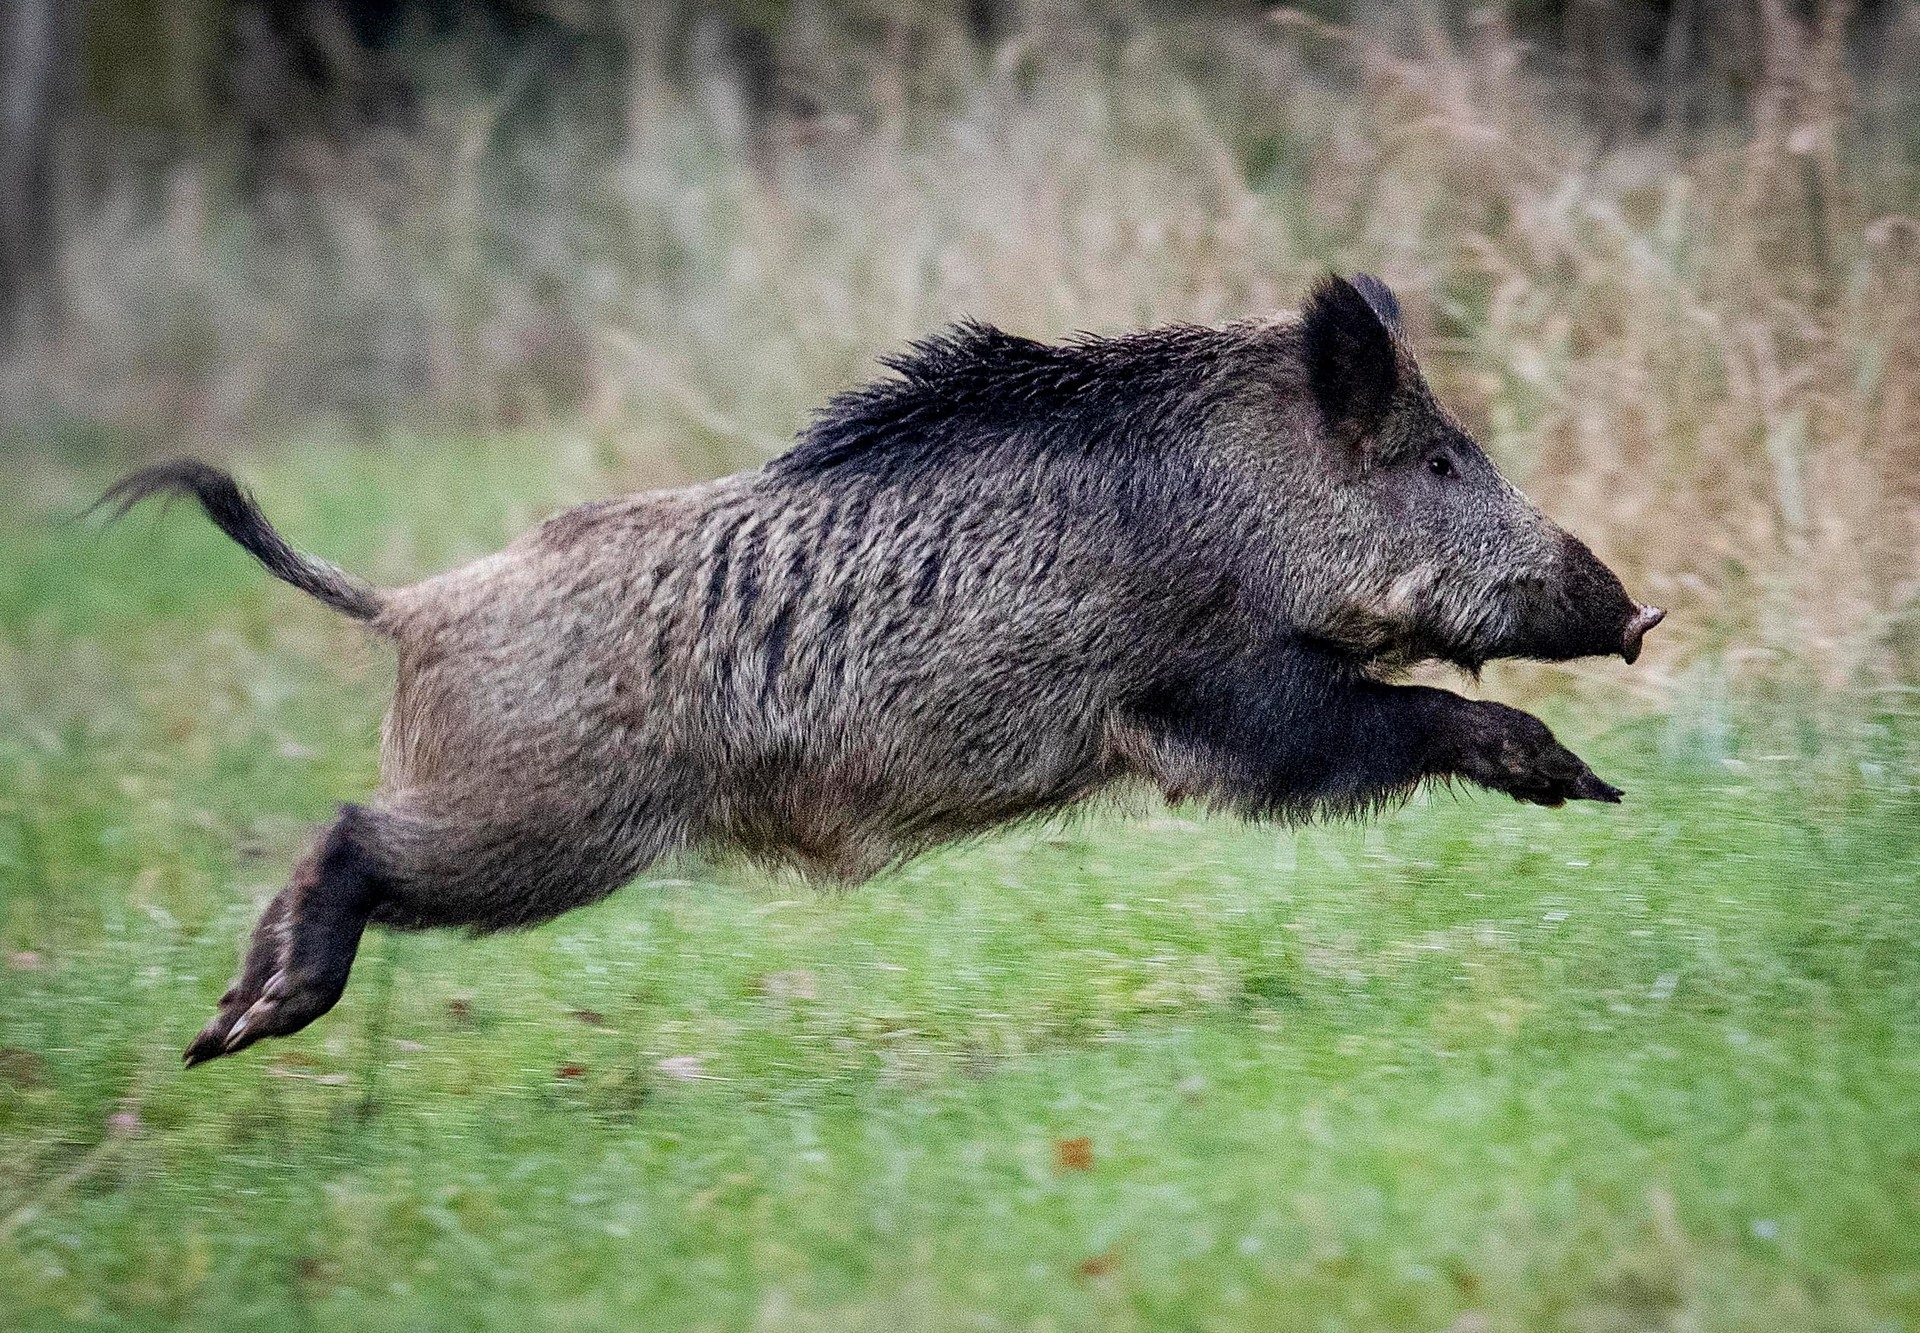 Wild pigs dig up $35,000 cocaine stash buried by gang